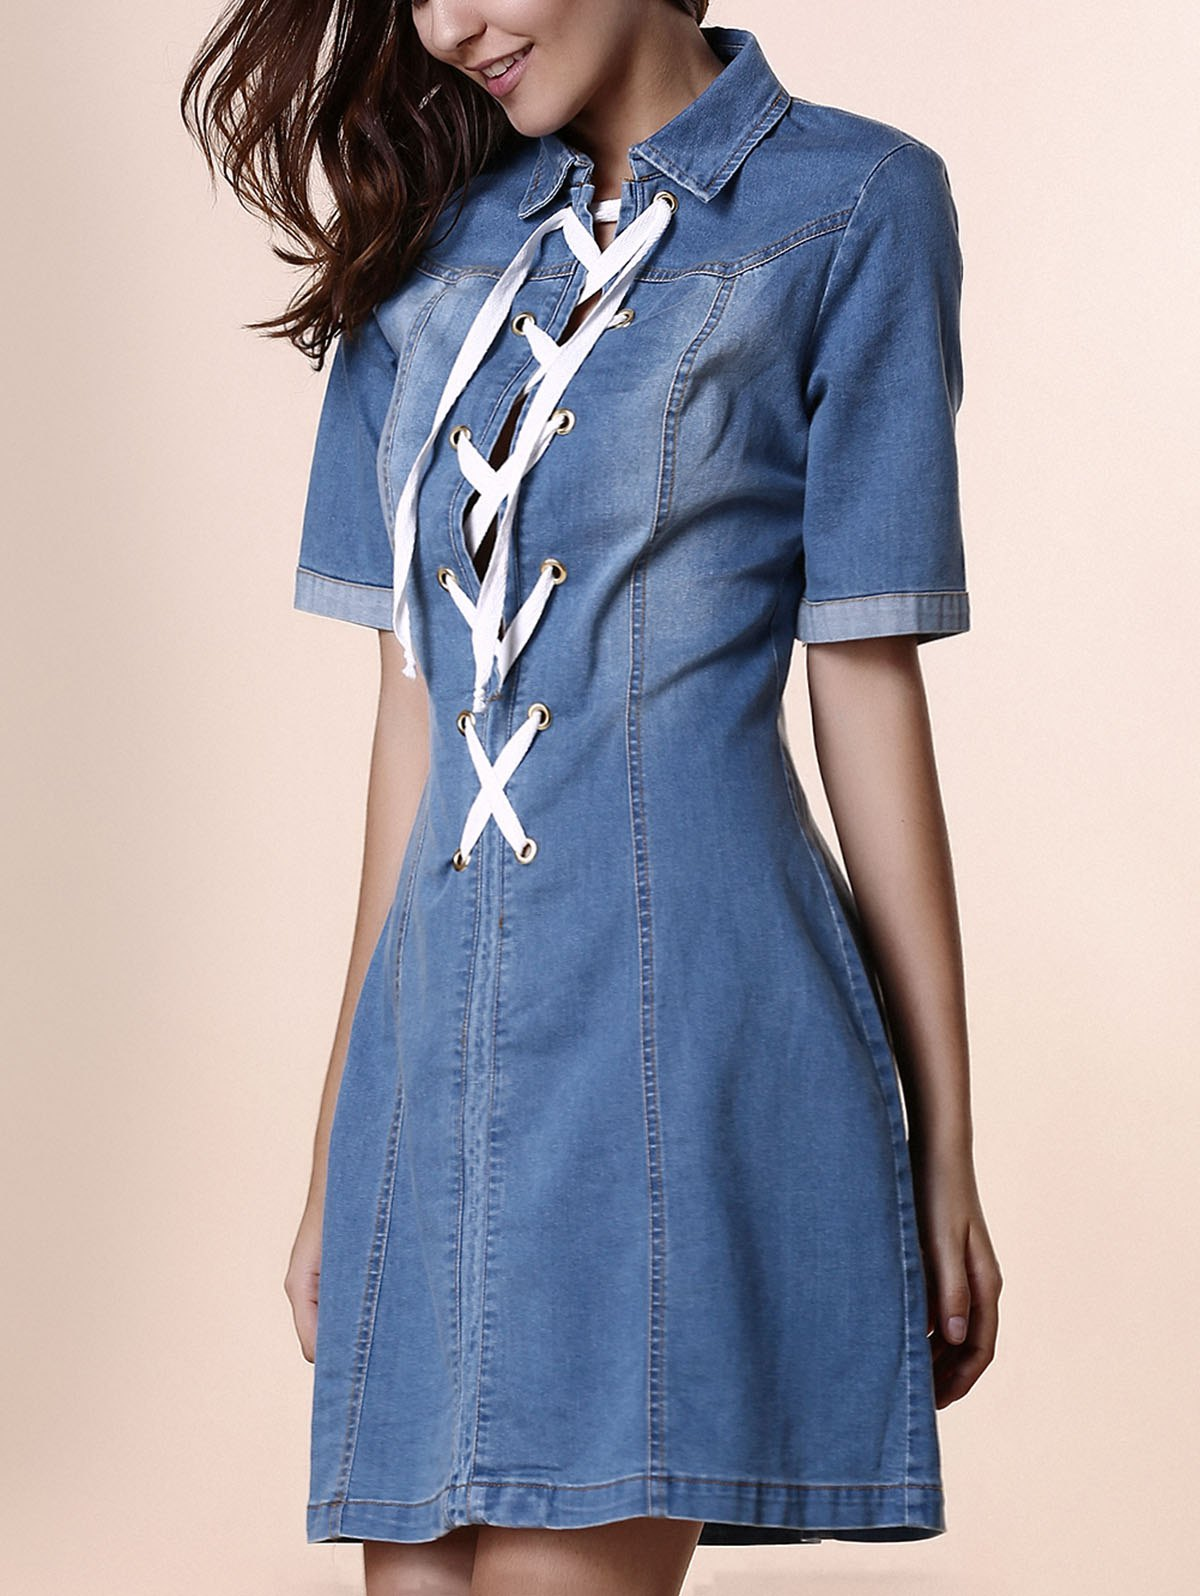 Stylish Shirt Collar Short Sleeve Lace-Up Denim Women's Dress - BLUE L